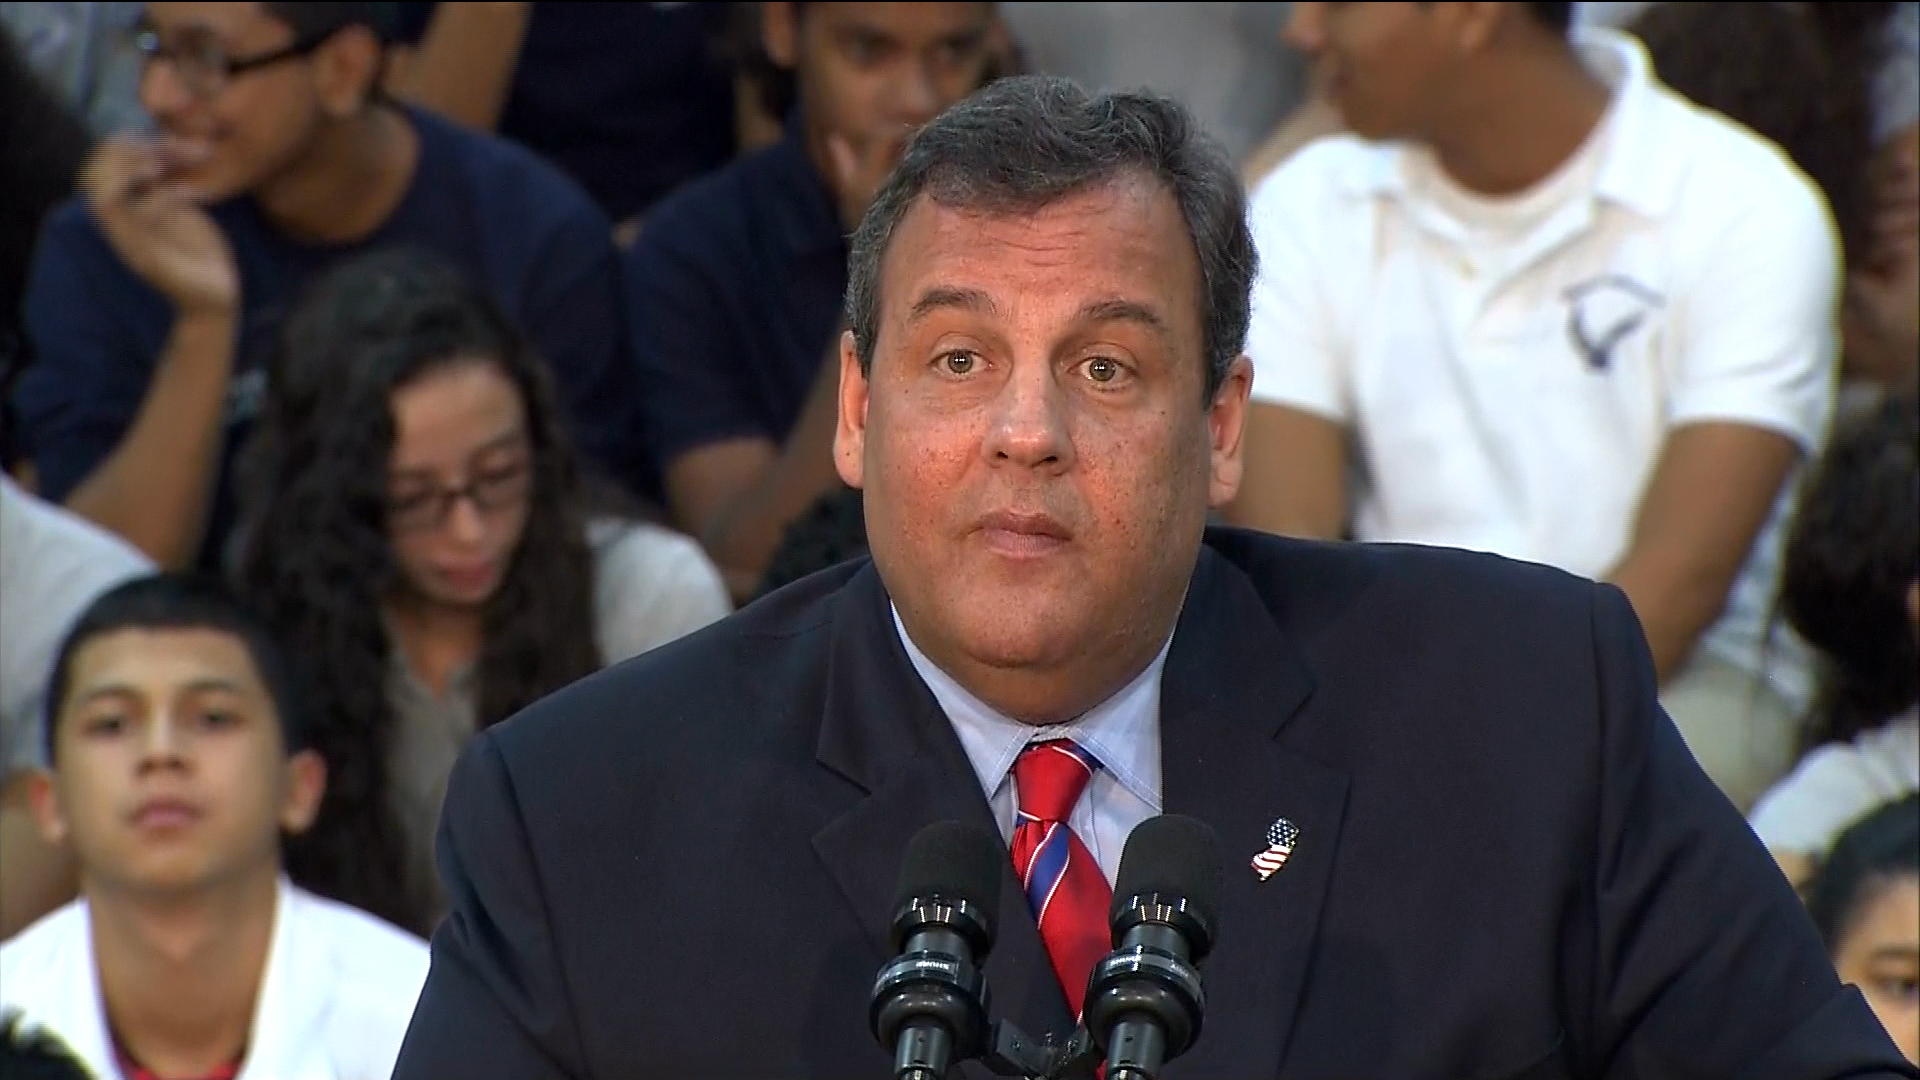 Christie scandal almost too absurd to believe